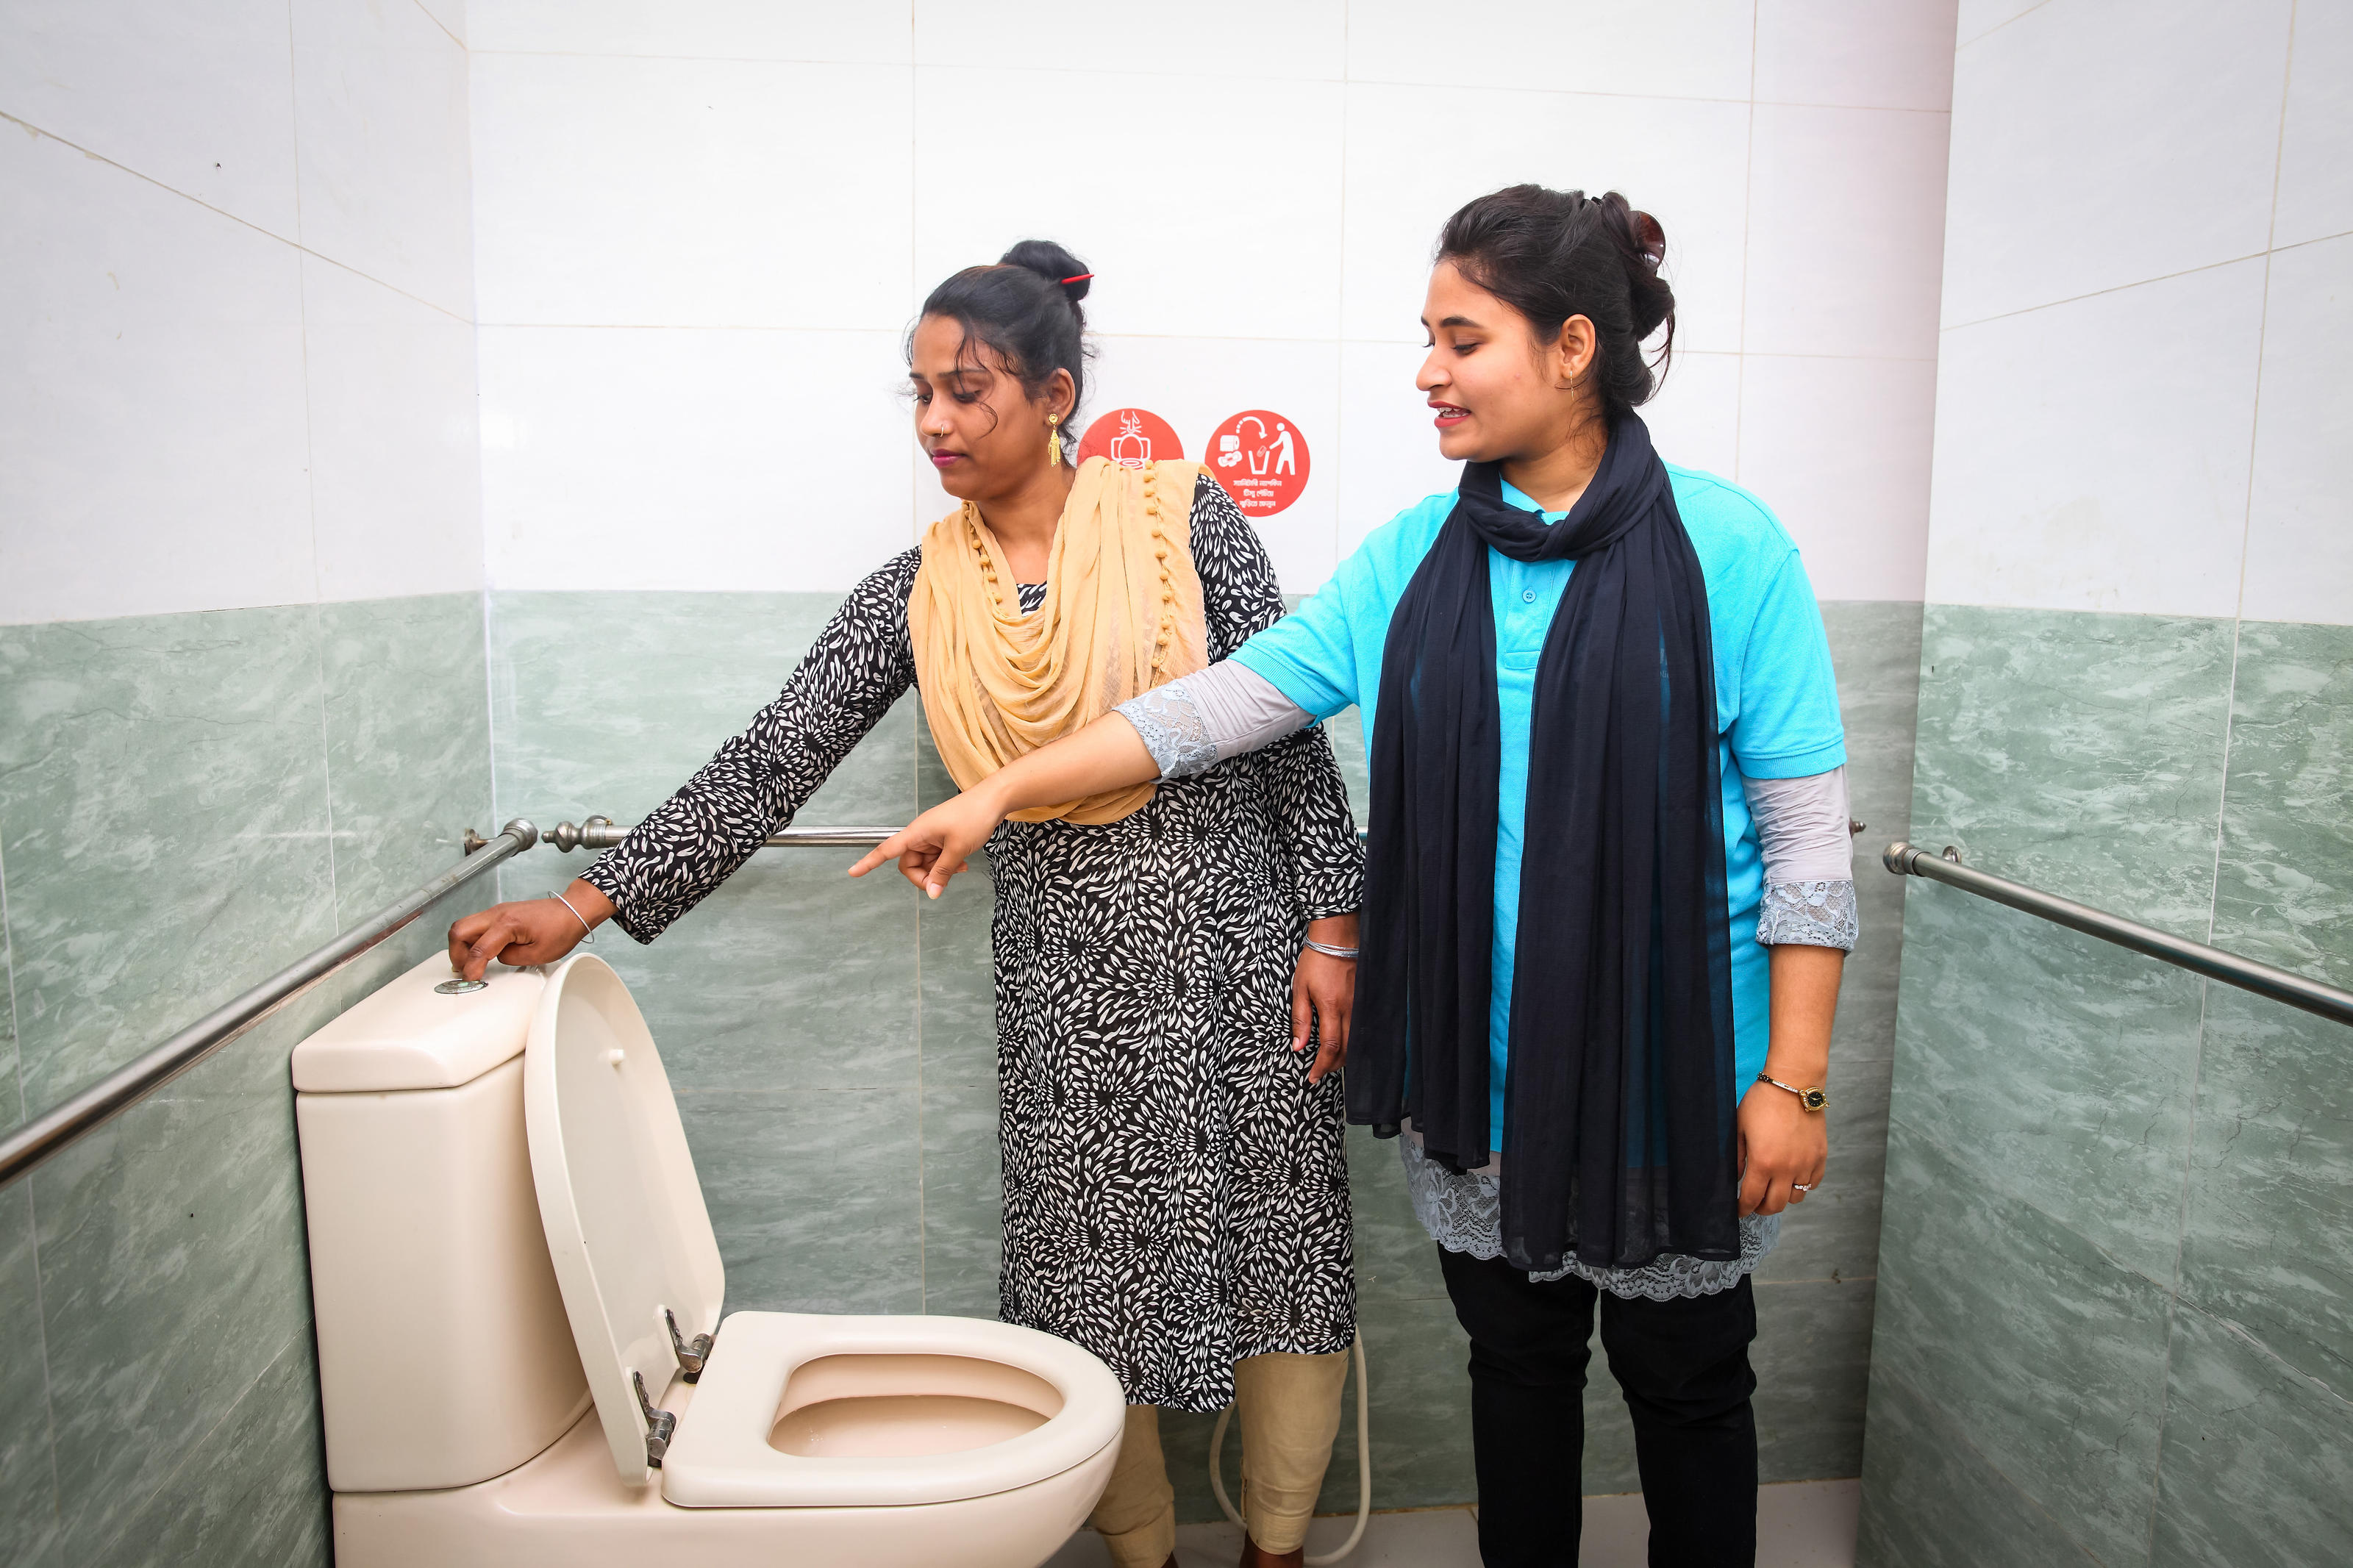 Nazma learning about the new toilet facilities with volunteer Habiba